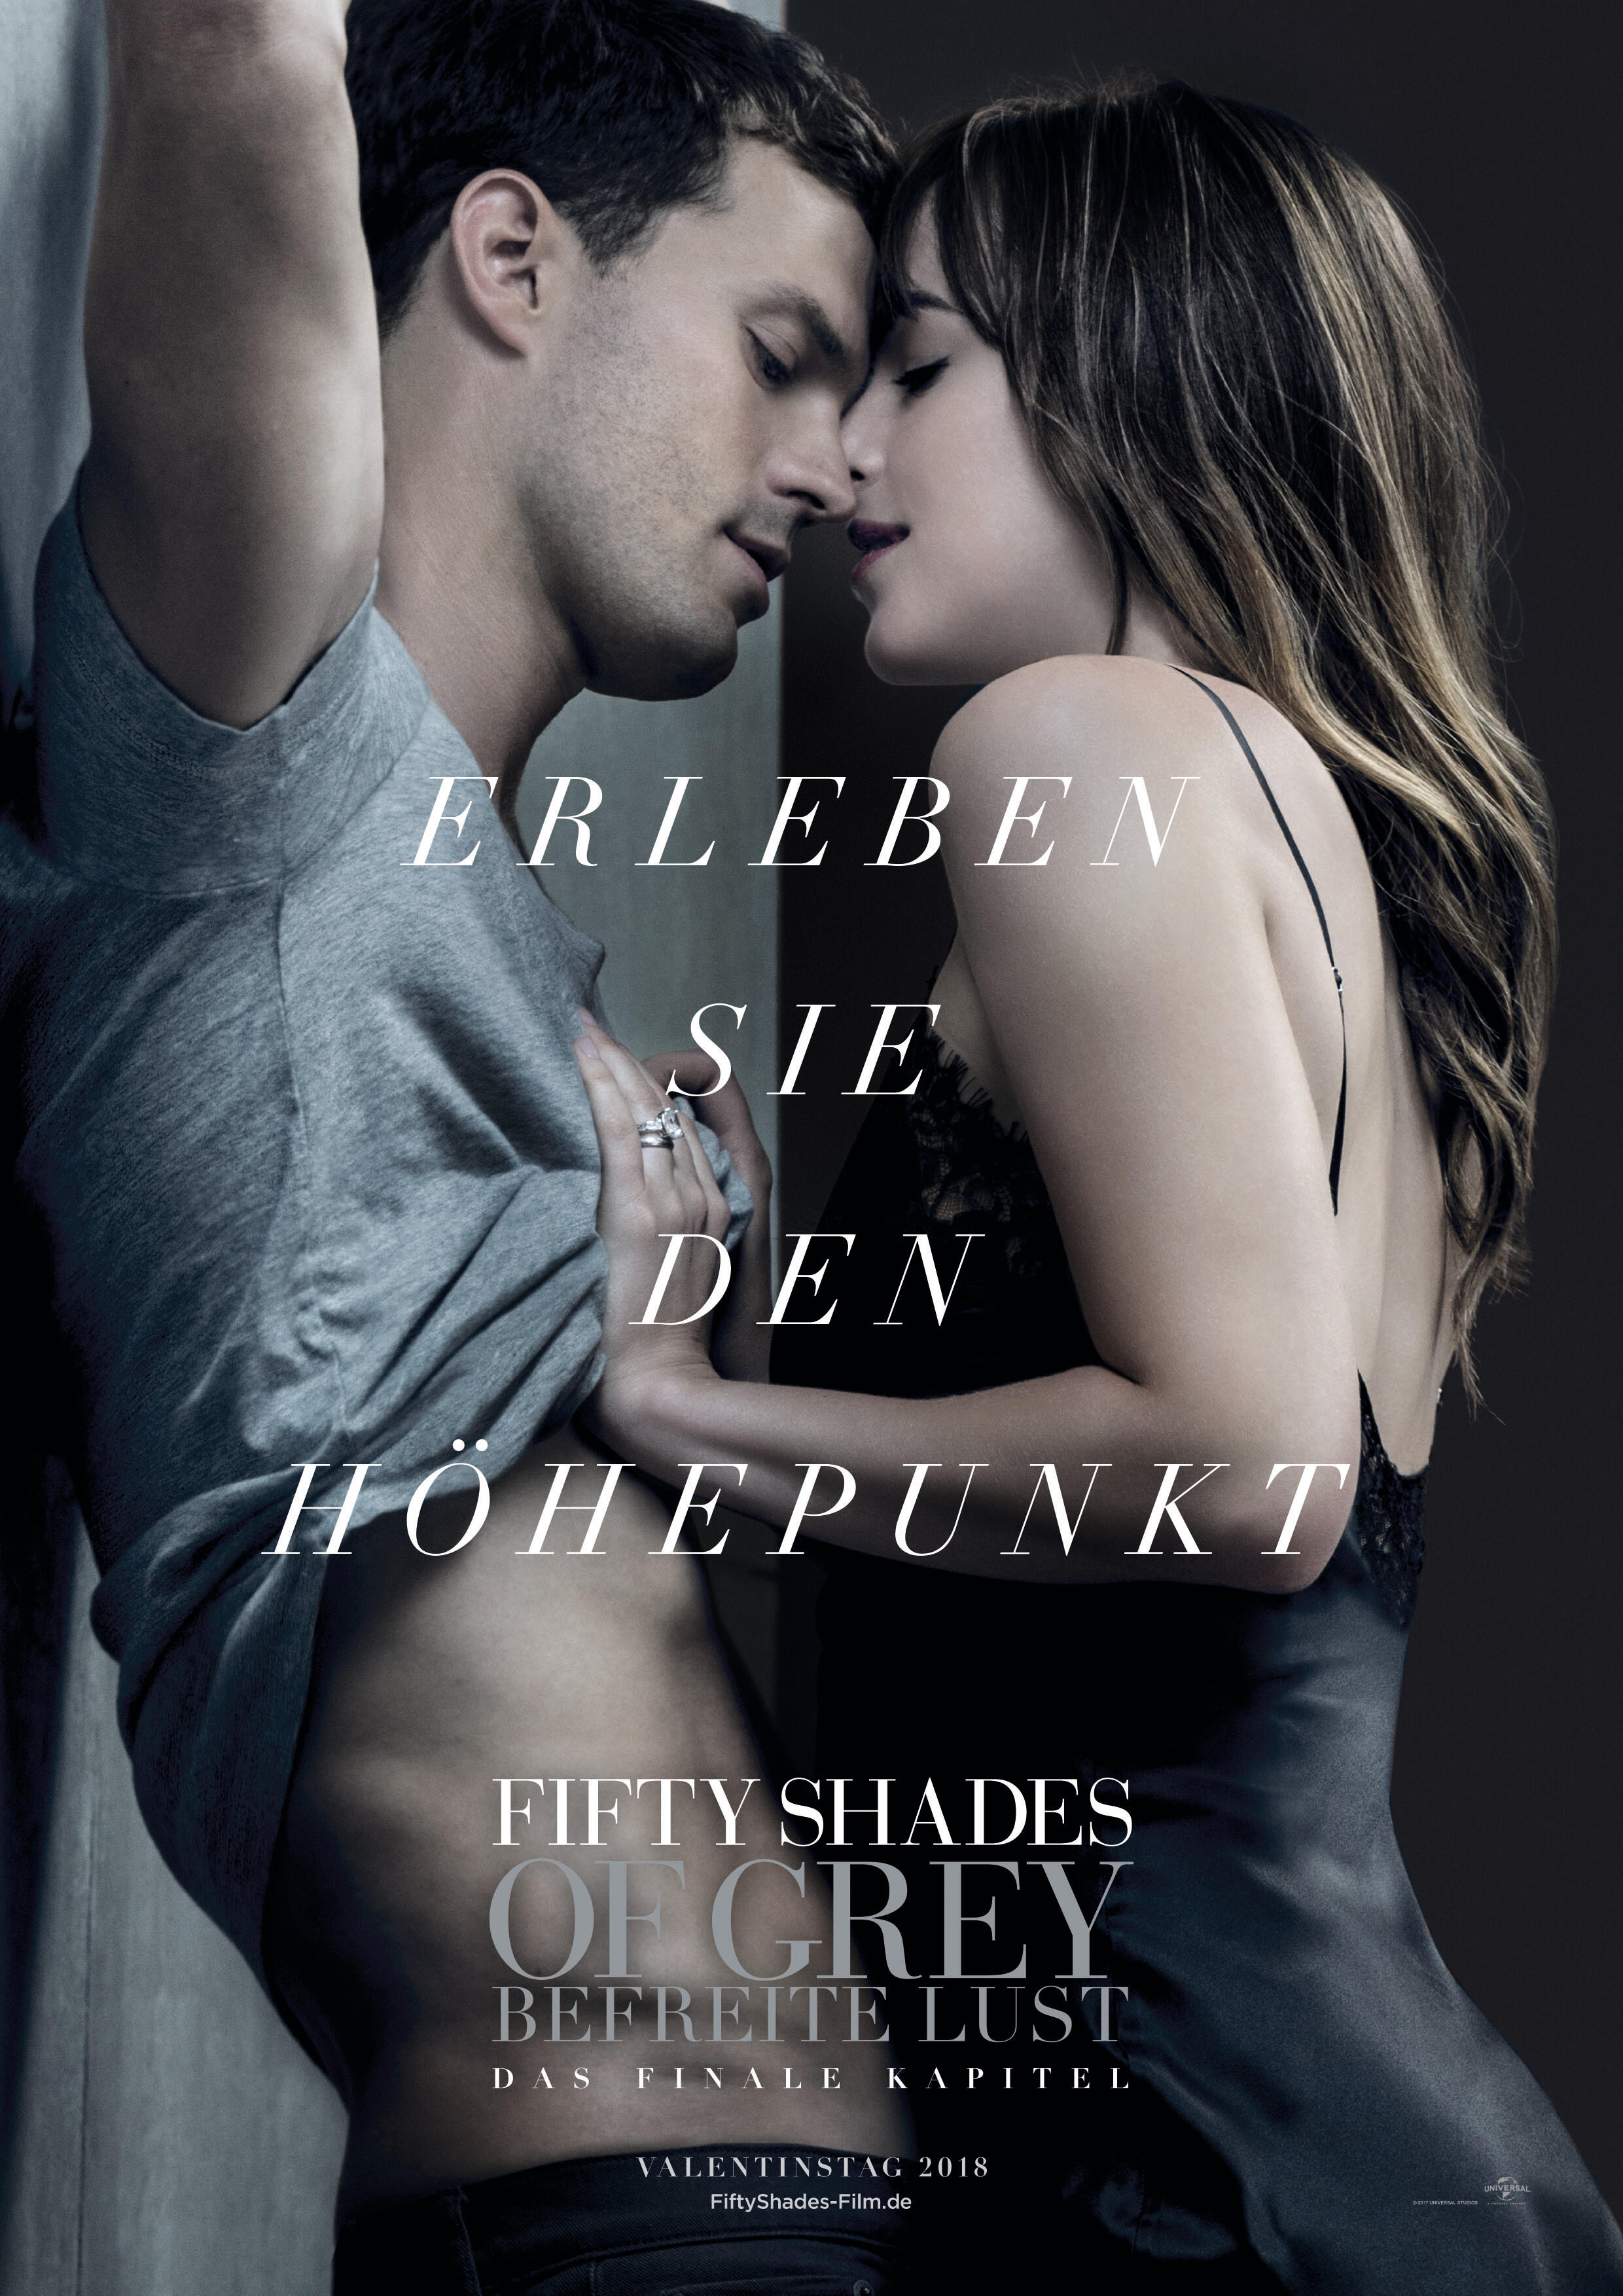 Fifty Shades Of Grey 3 Besetzung